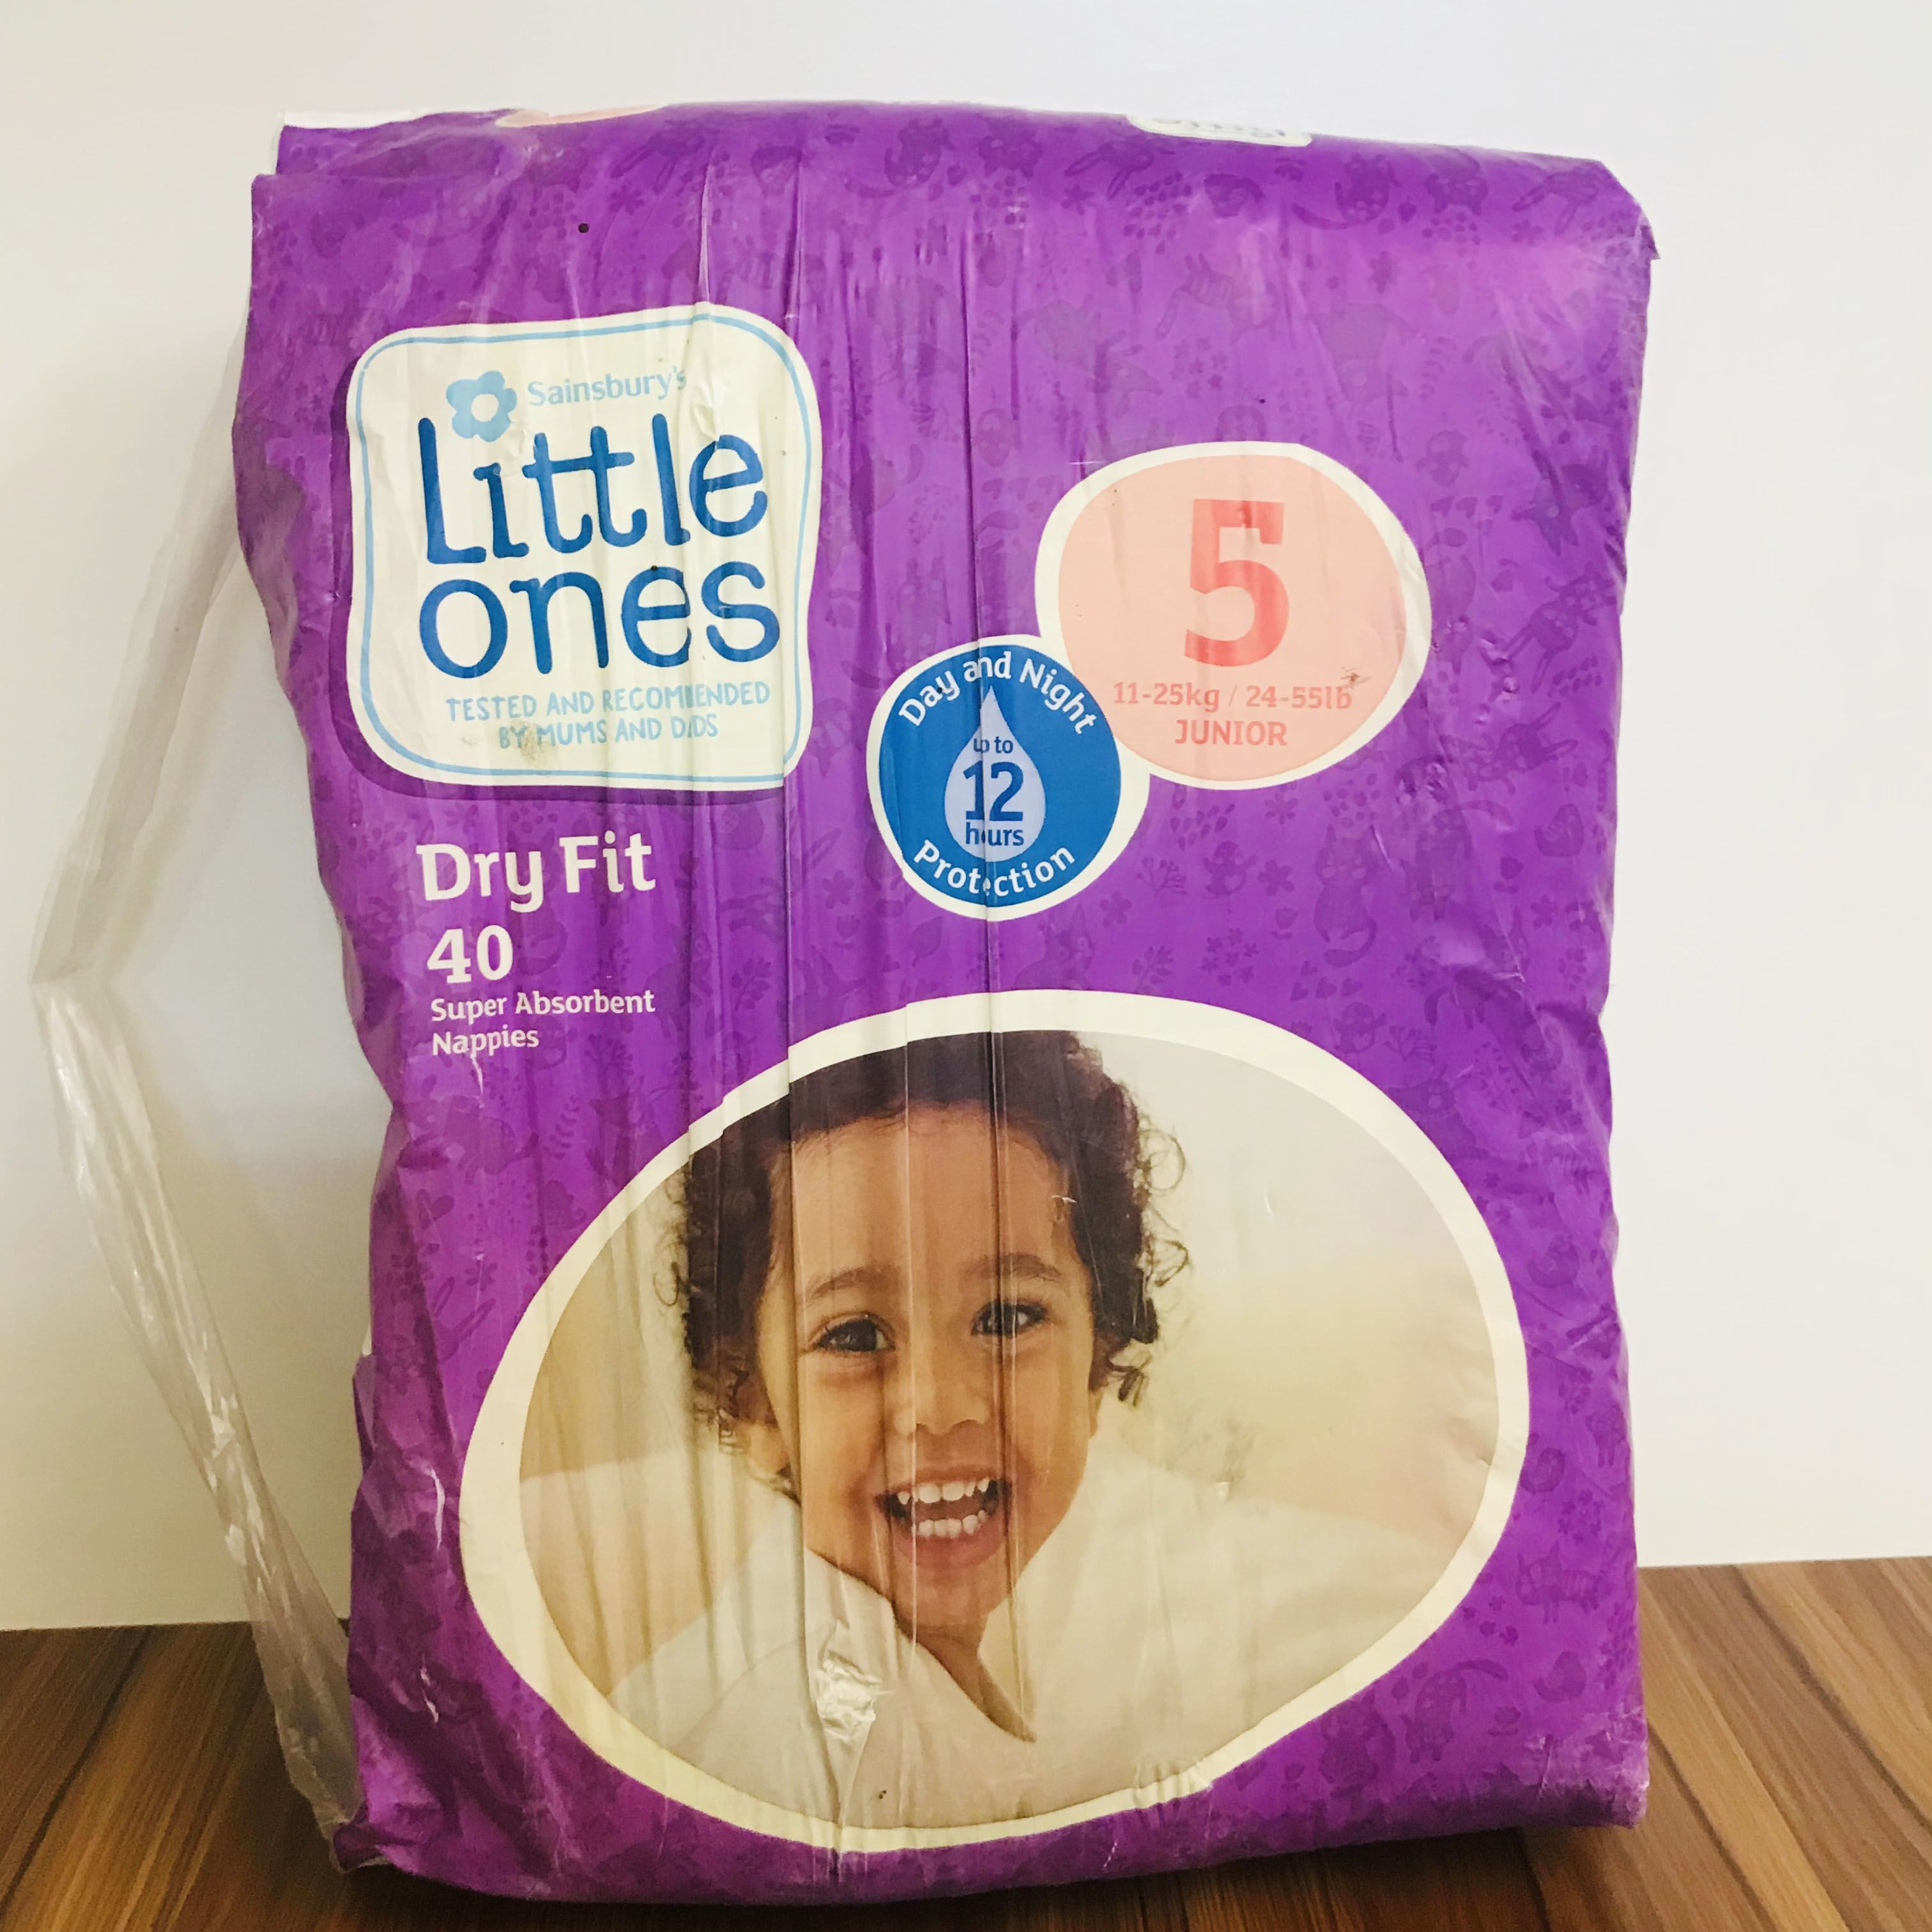 Sainsbury's Little Ones Dry Fit Size 5 Junior 40 Nappies